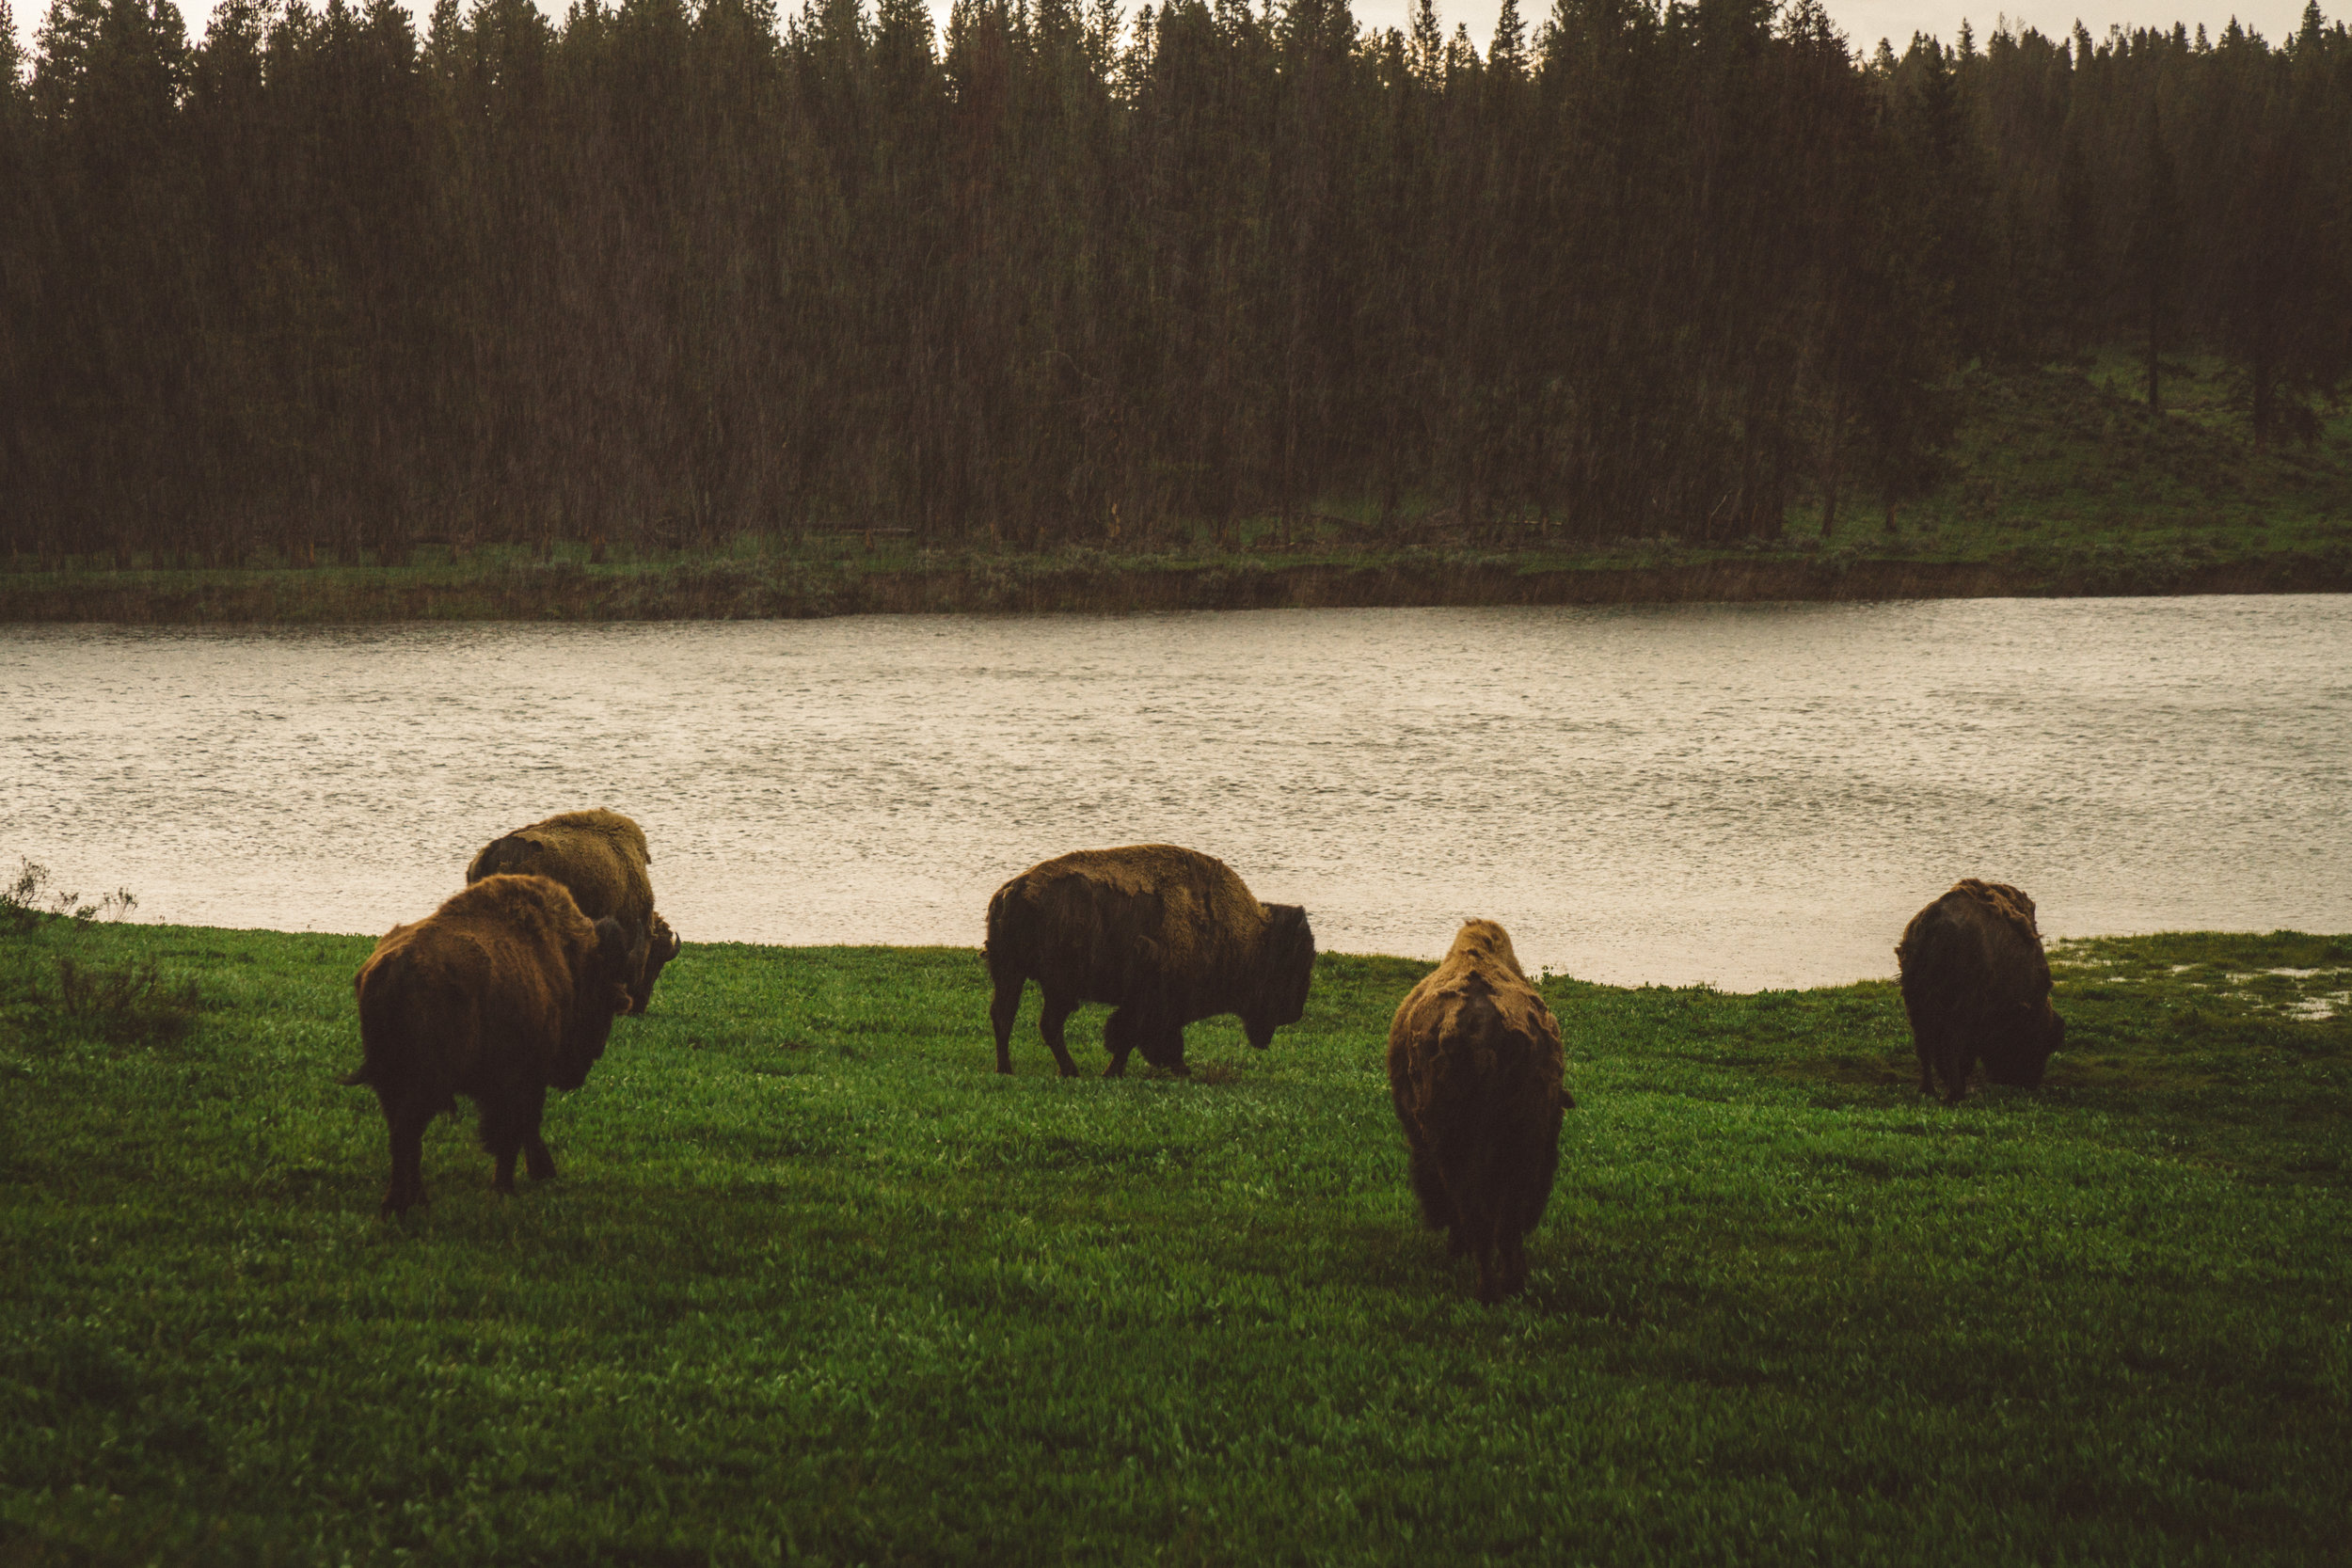 The rain then began absolutely pounding down. As we began to drive back towards the campsite, but we had to stop to take some photos of these majestically stoic bison.